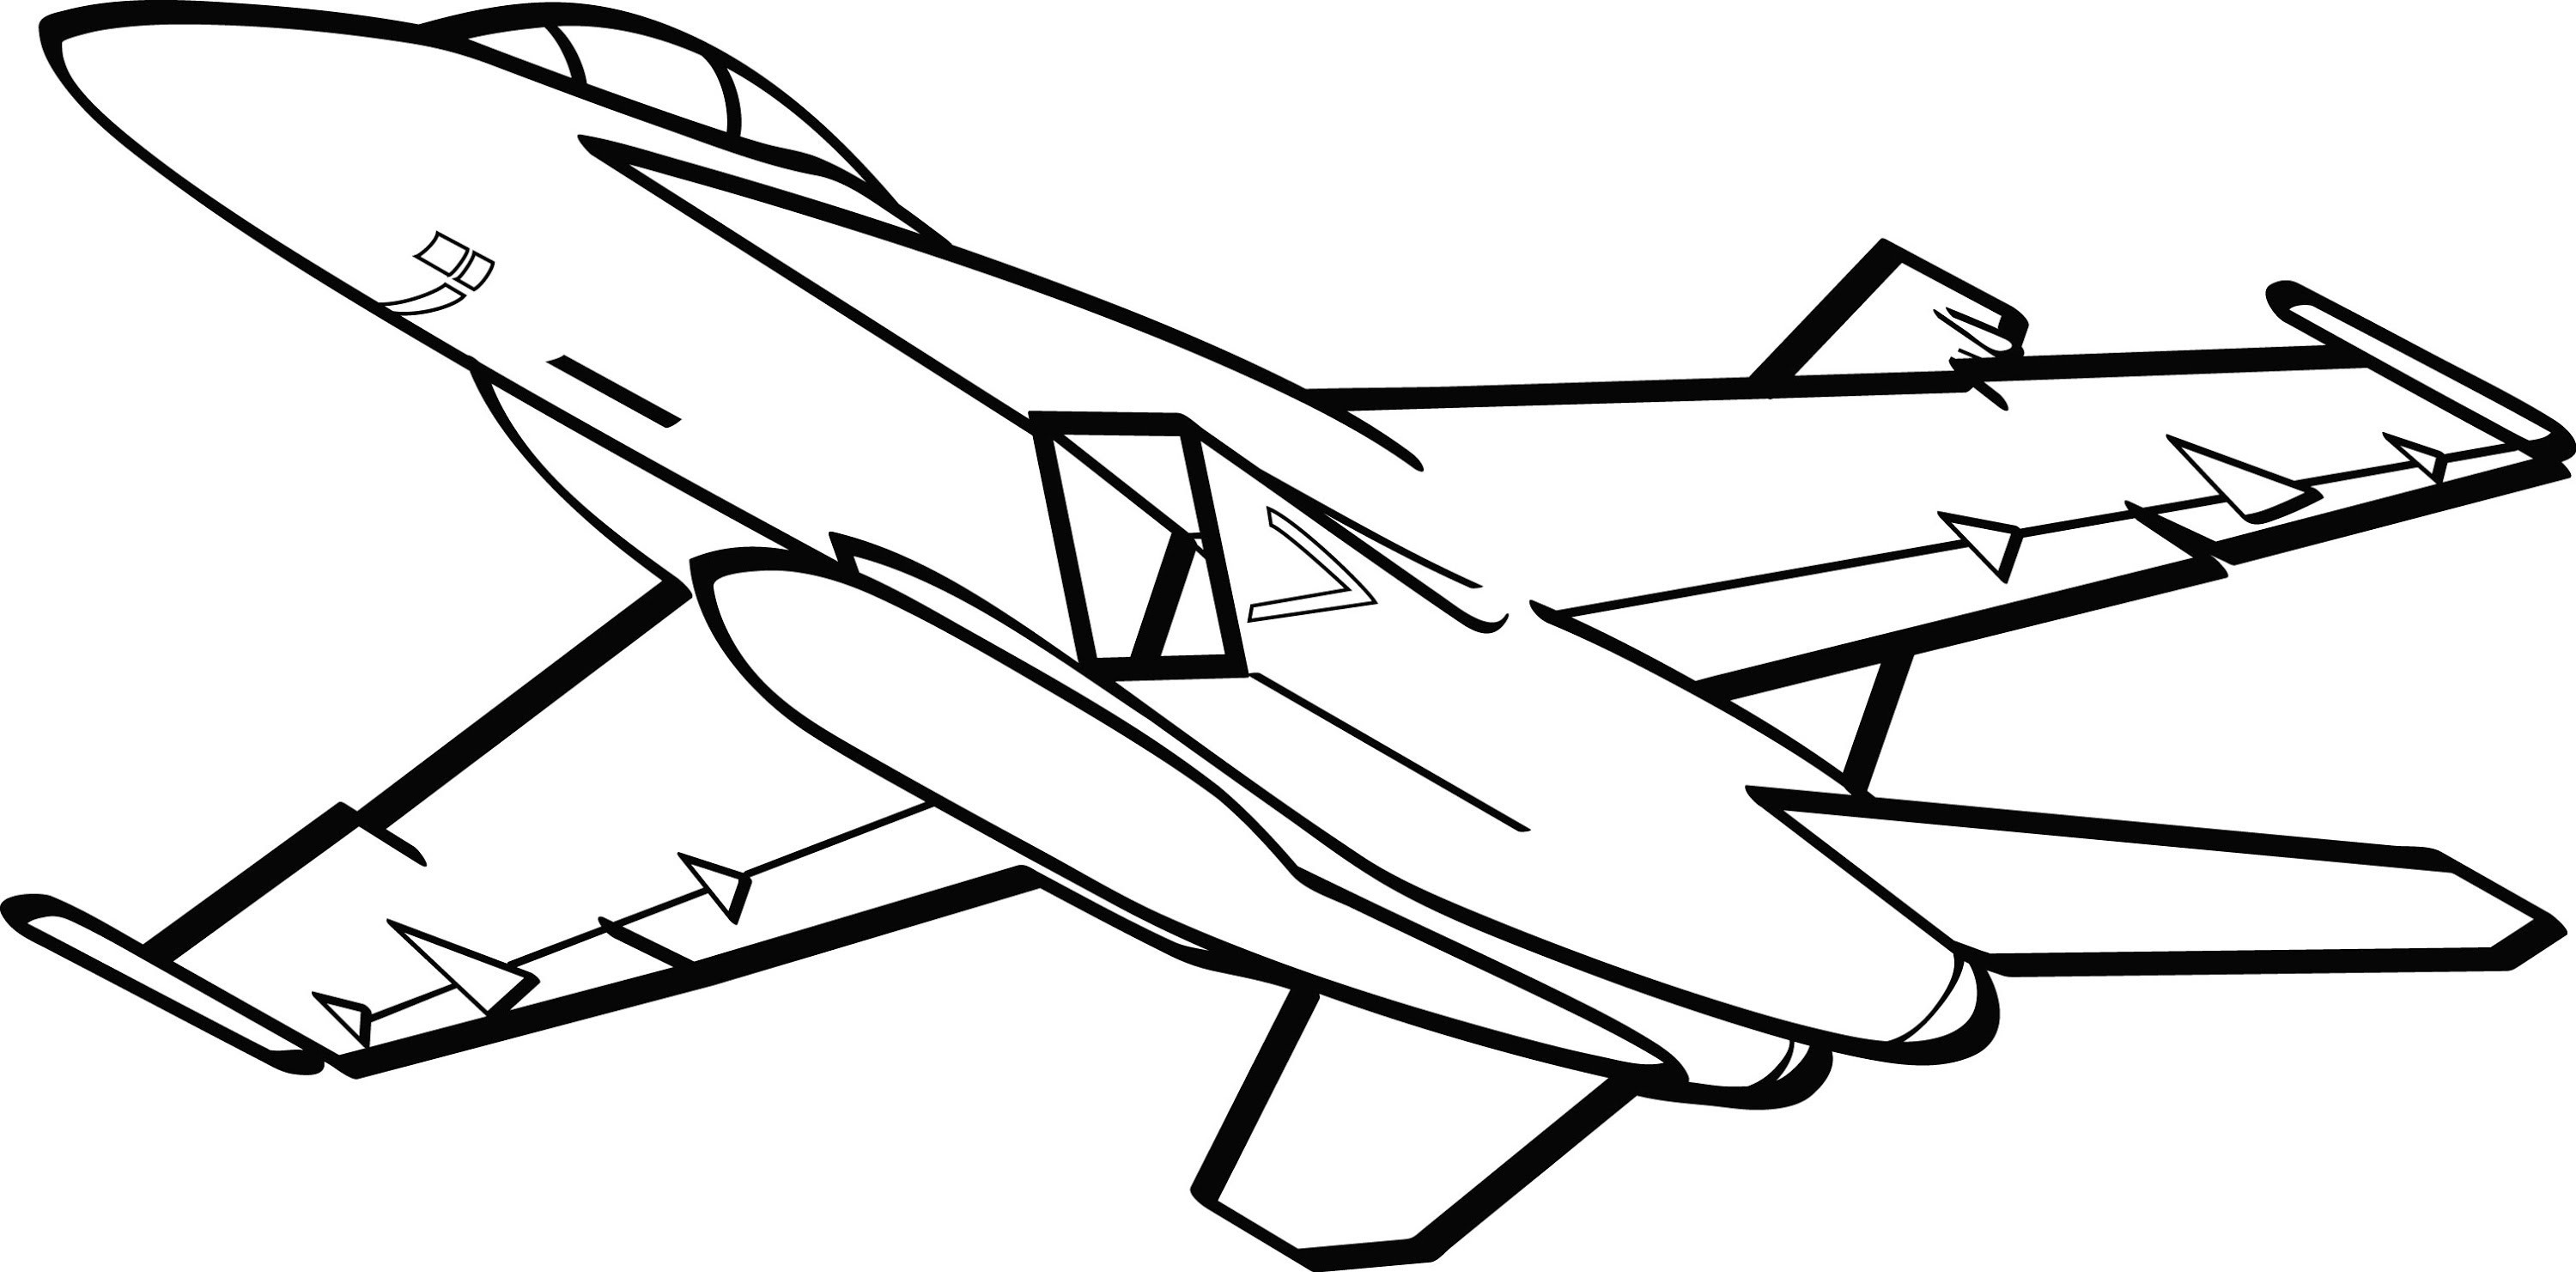 Clip art screenshot saturday. Jet clipart black and white